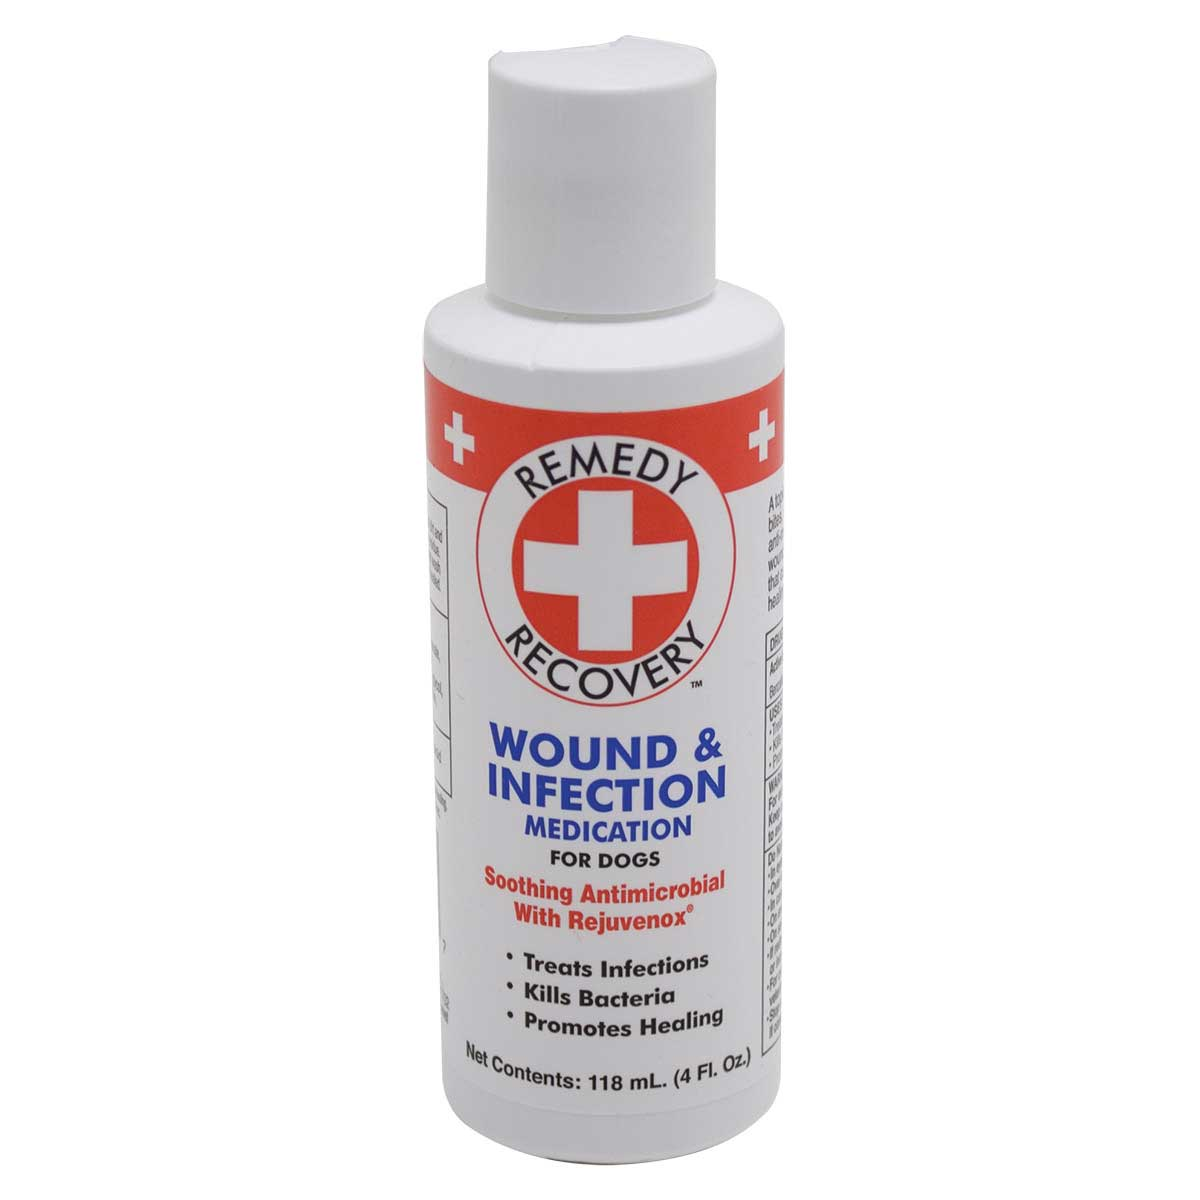 Cardinal Remedy + Recovery Wound & Infection Medication Lotion 4 ounce